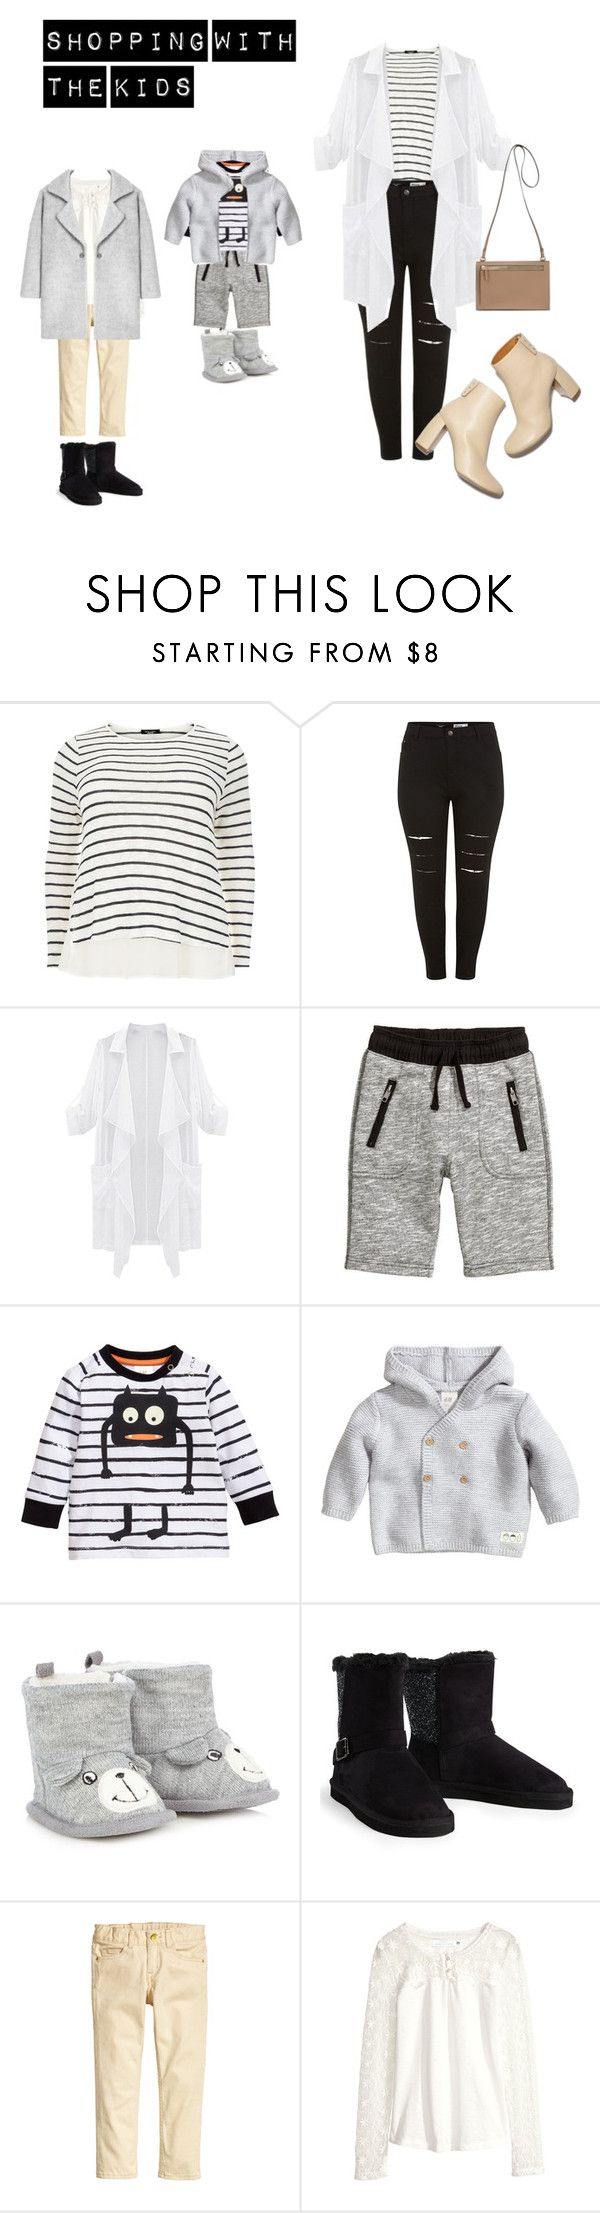 """""""Shopping with the kids."""" by daniellepearce13 on Polyvore featuring STELLA McCARTNEY, H&M, Kofta, Aéropostale, MANGO and comfy"""